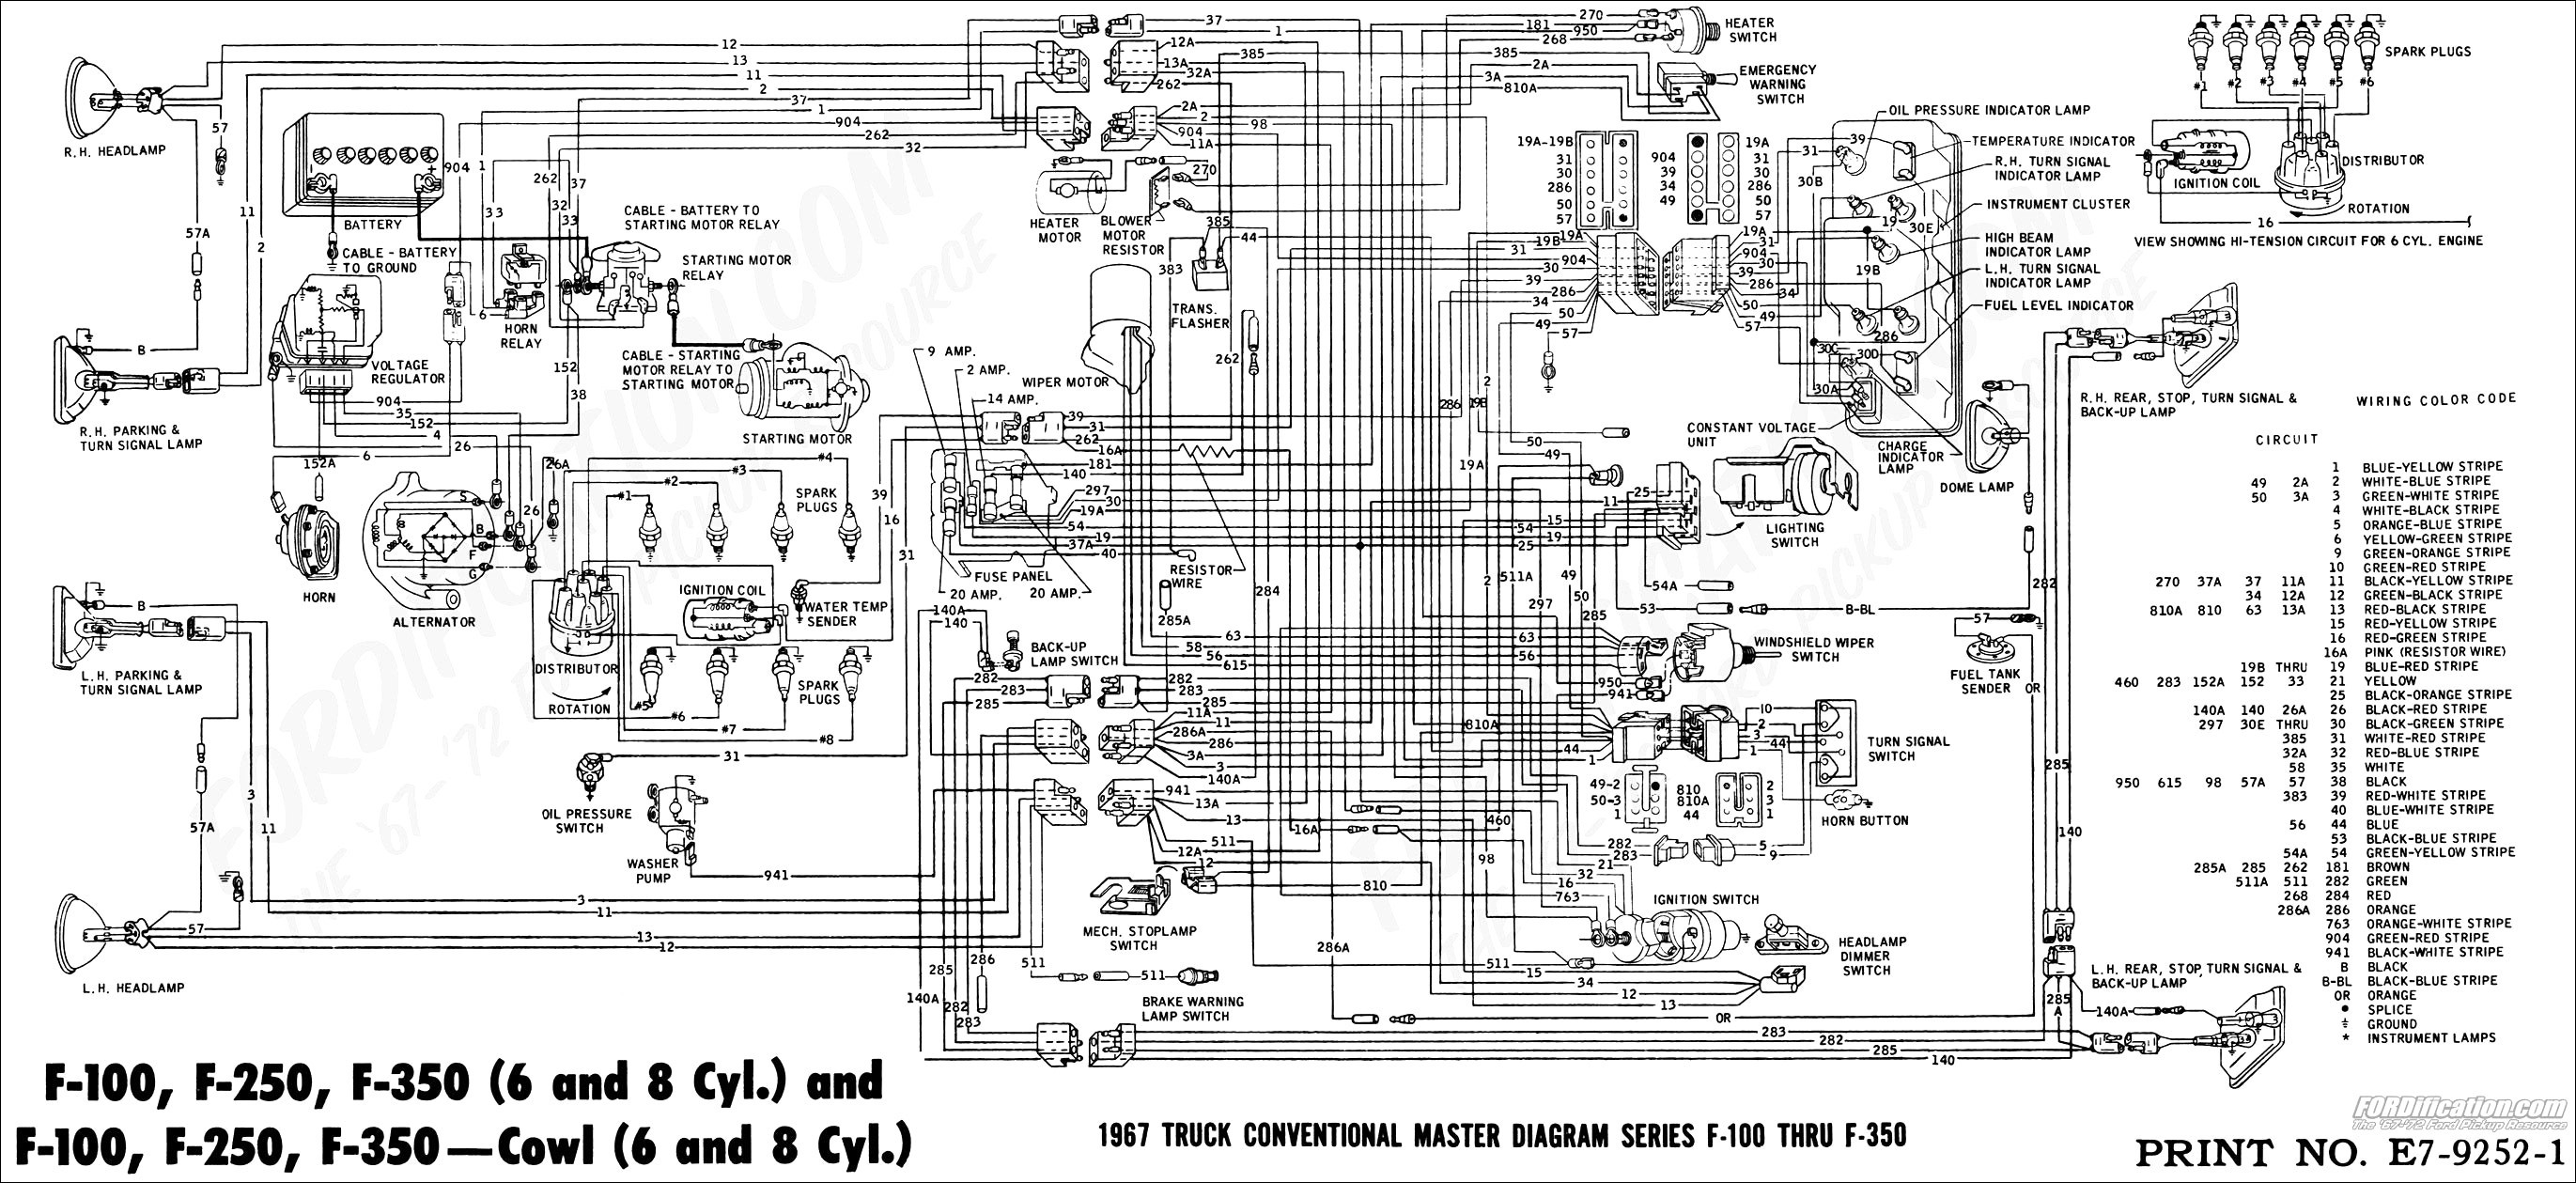 ford f250 wiring diagram online wiring diagram and schematics 66 mustang ignition wiring diagram ford f250 wiring diagram online wiring diagram image rh mainetreasurechest com